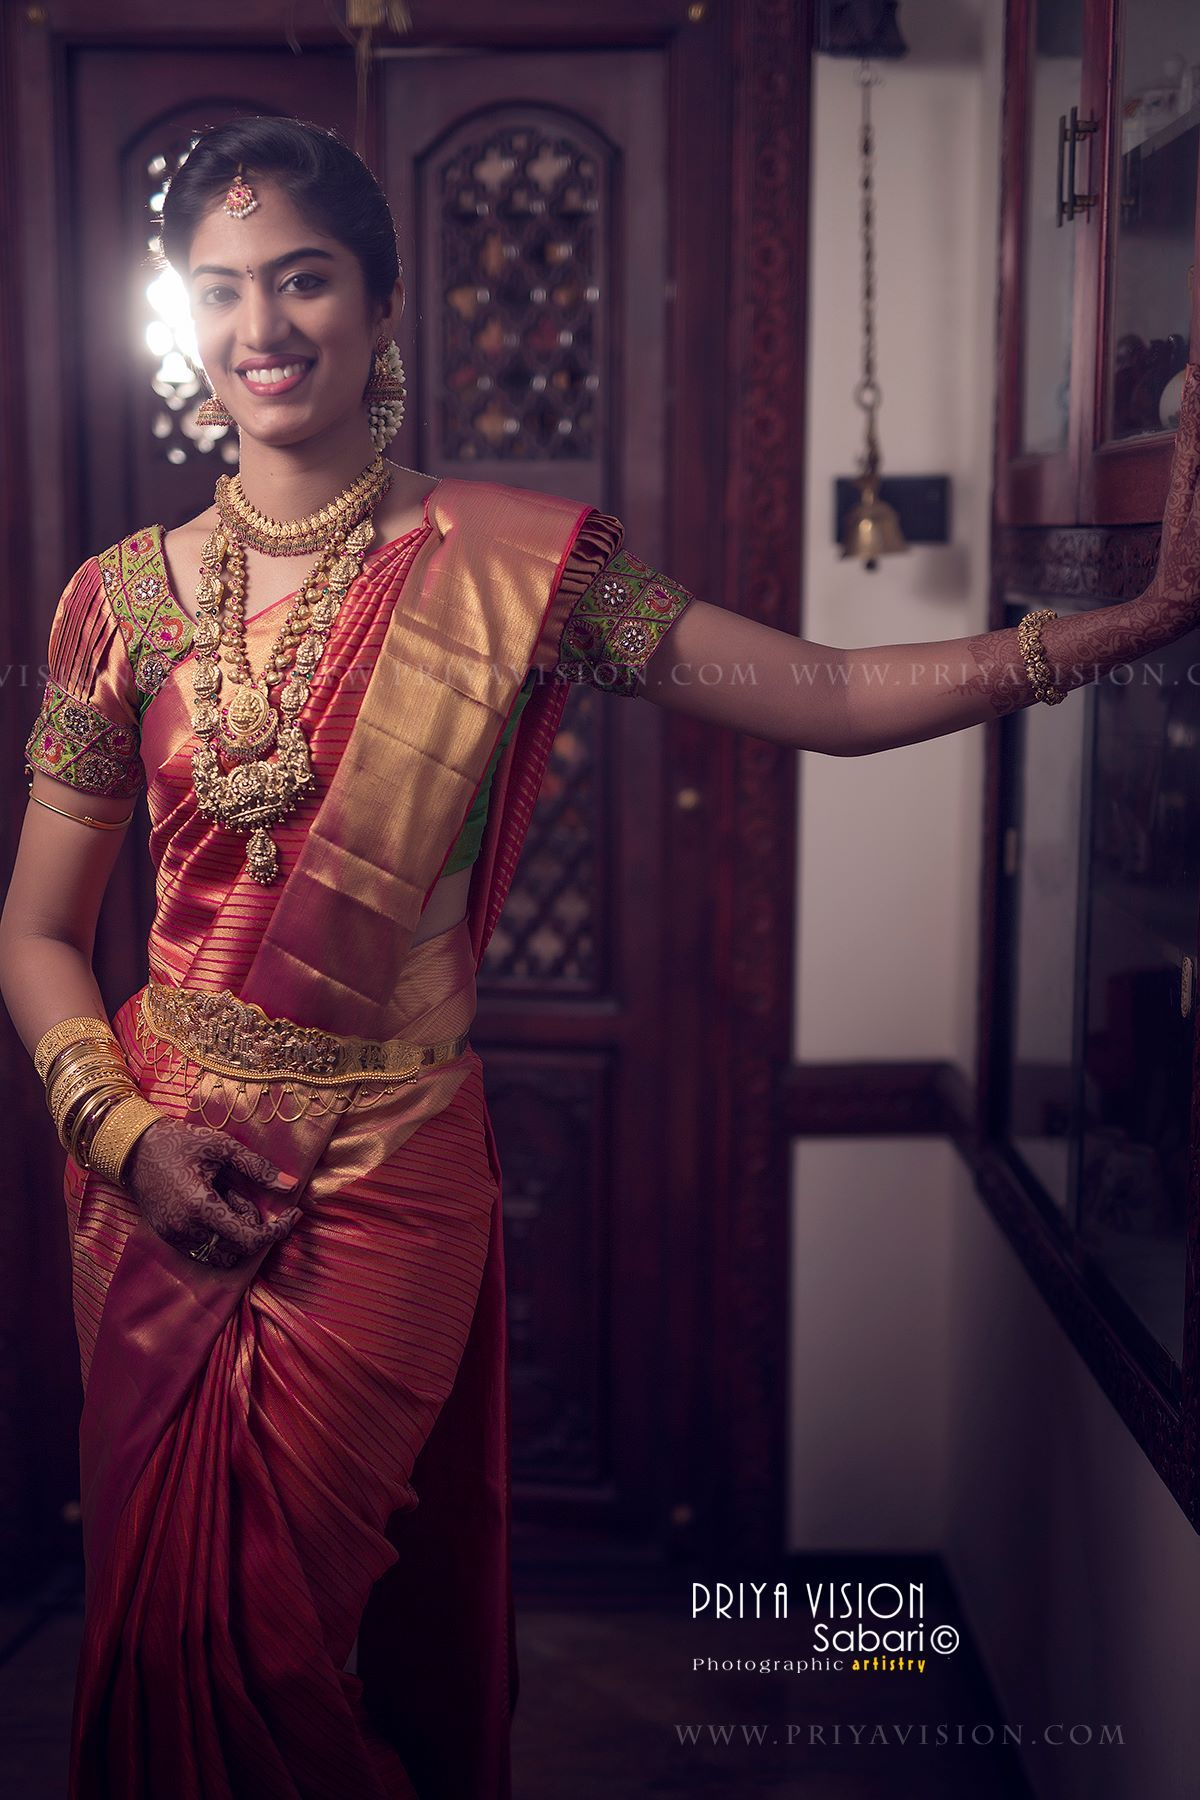 indian wedding photography design%0A Gorgeous South Indian Brides Pics captured by Priya Vision Sabari  Photography Please visit our website www